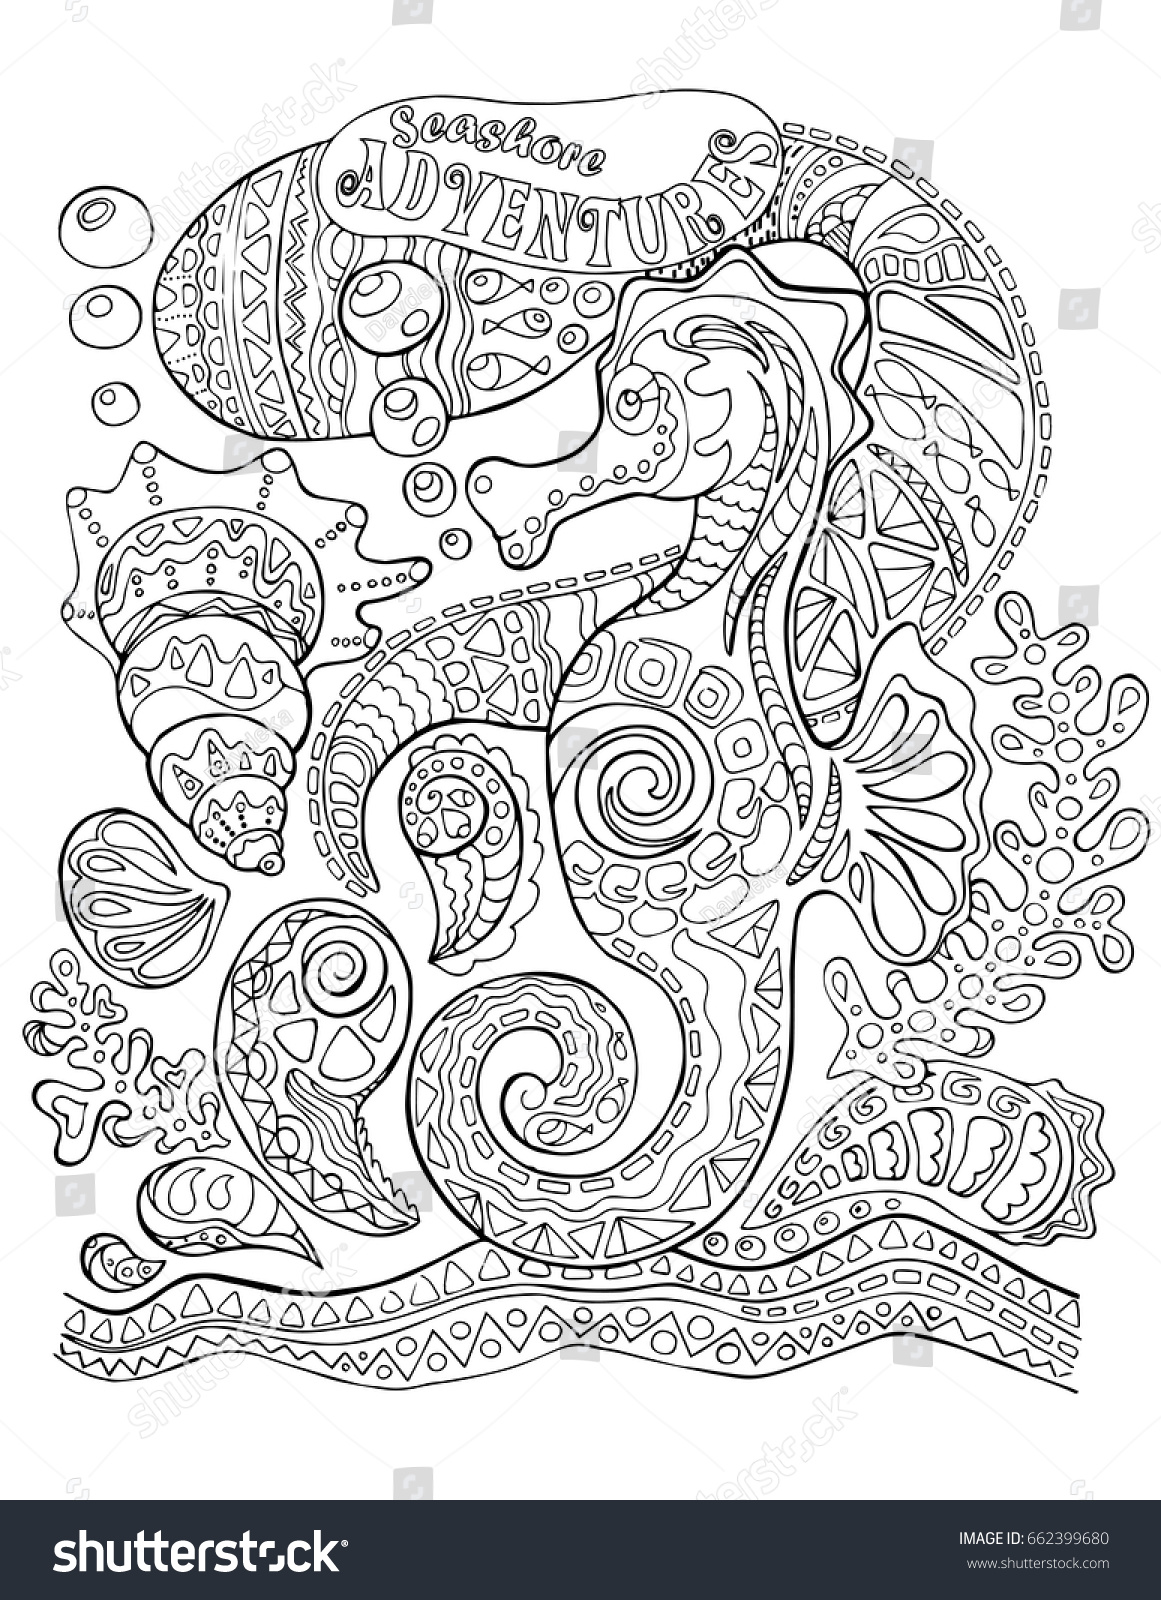 Seahorse And Sea Shells Adult Coloring Page Horse Vector Book Cover Underwater